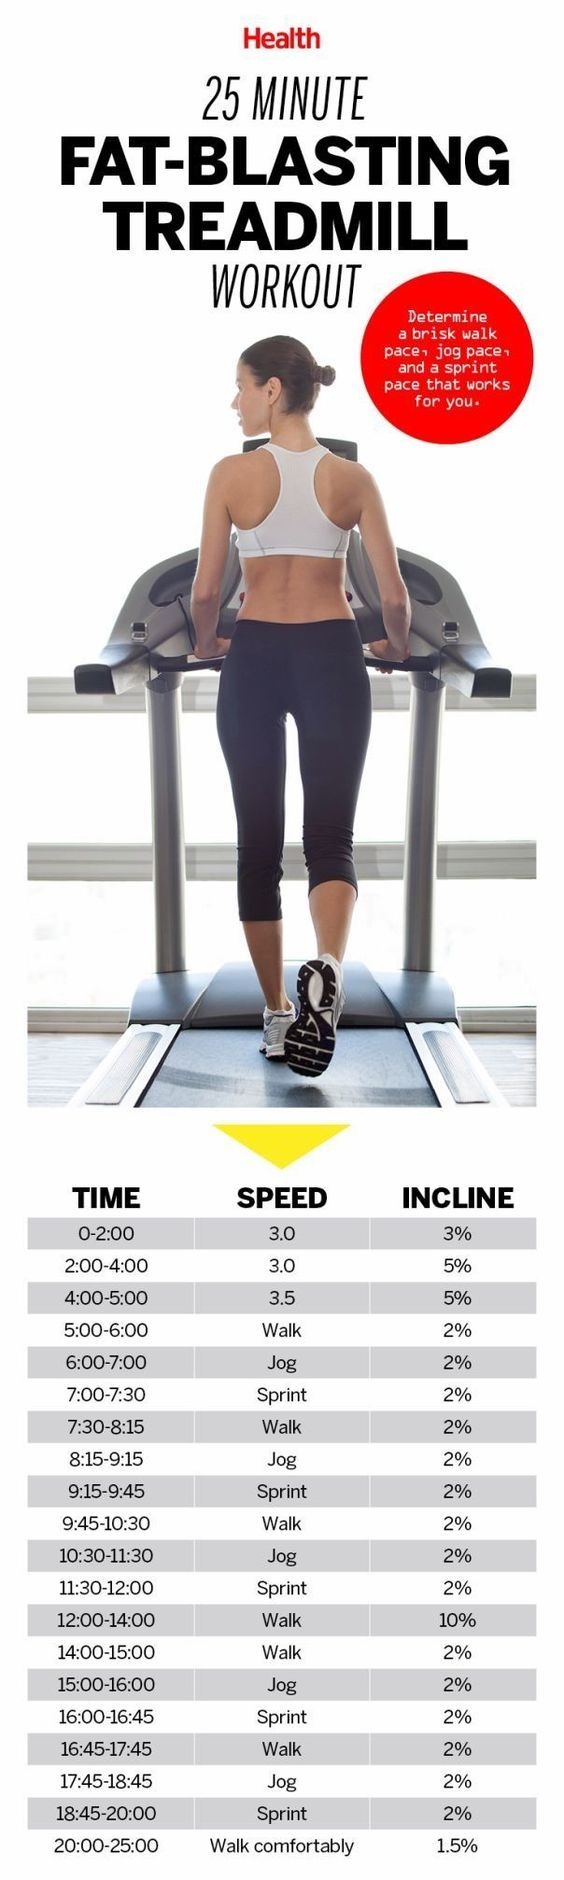 Visit this post for the best weight loss workout plan for beginners. Discover your favorite gym routine for weight loss and toning. #fitnessgoals #exercise #workouts #weightloss #healthylife #healthyliving #wellness #fitness #keepingfit